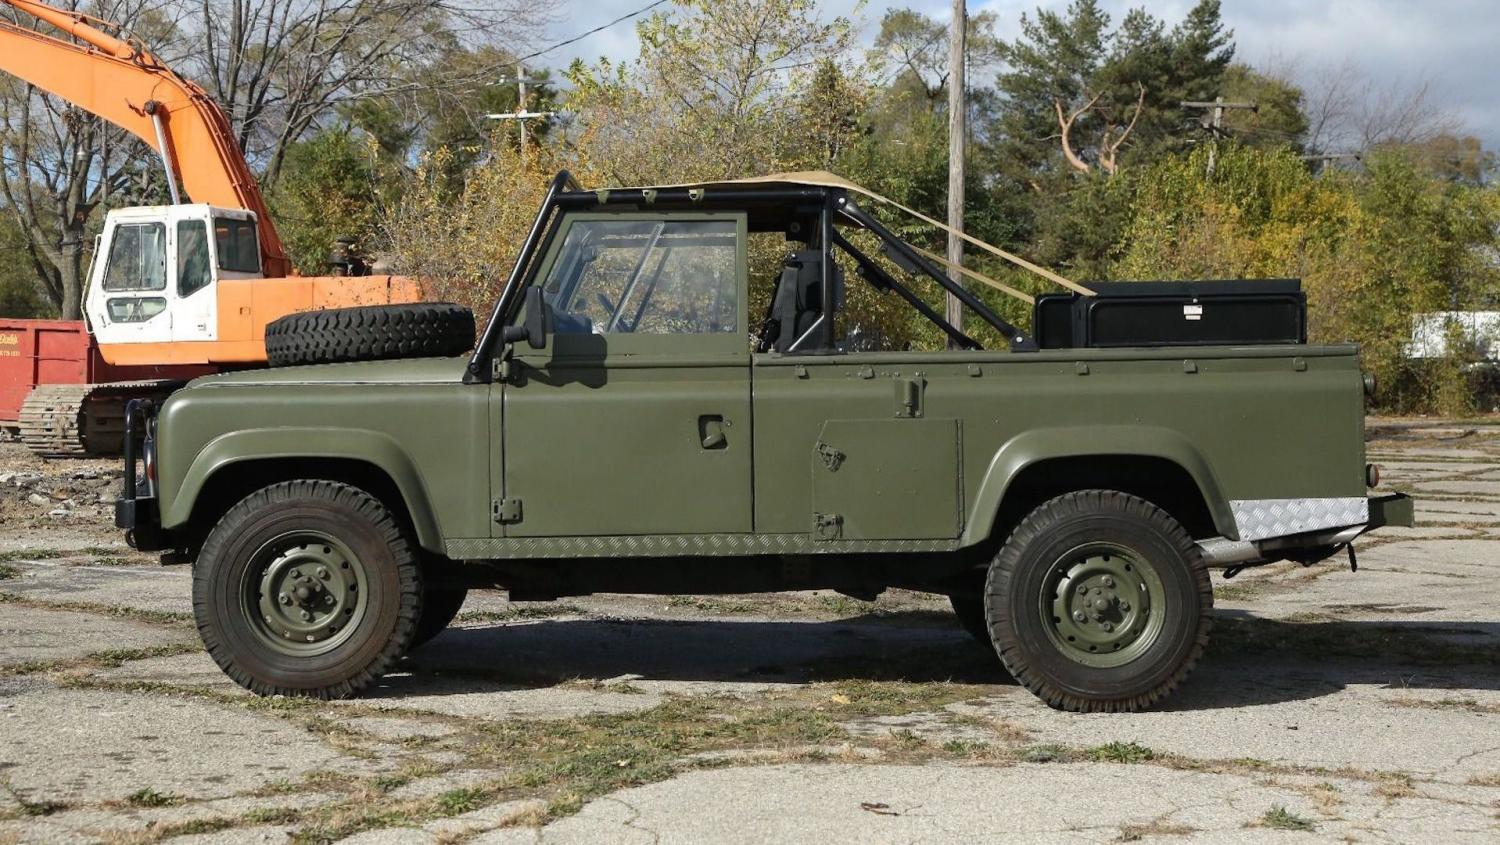 Click image for larger version  Name:land-rover-defender-military-ebay.jpg Views:20 Size:253.8 KB ID:422282